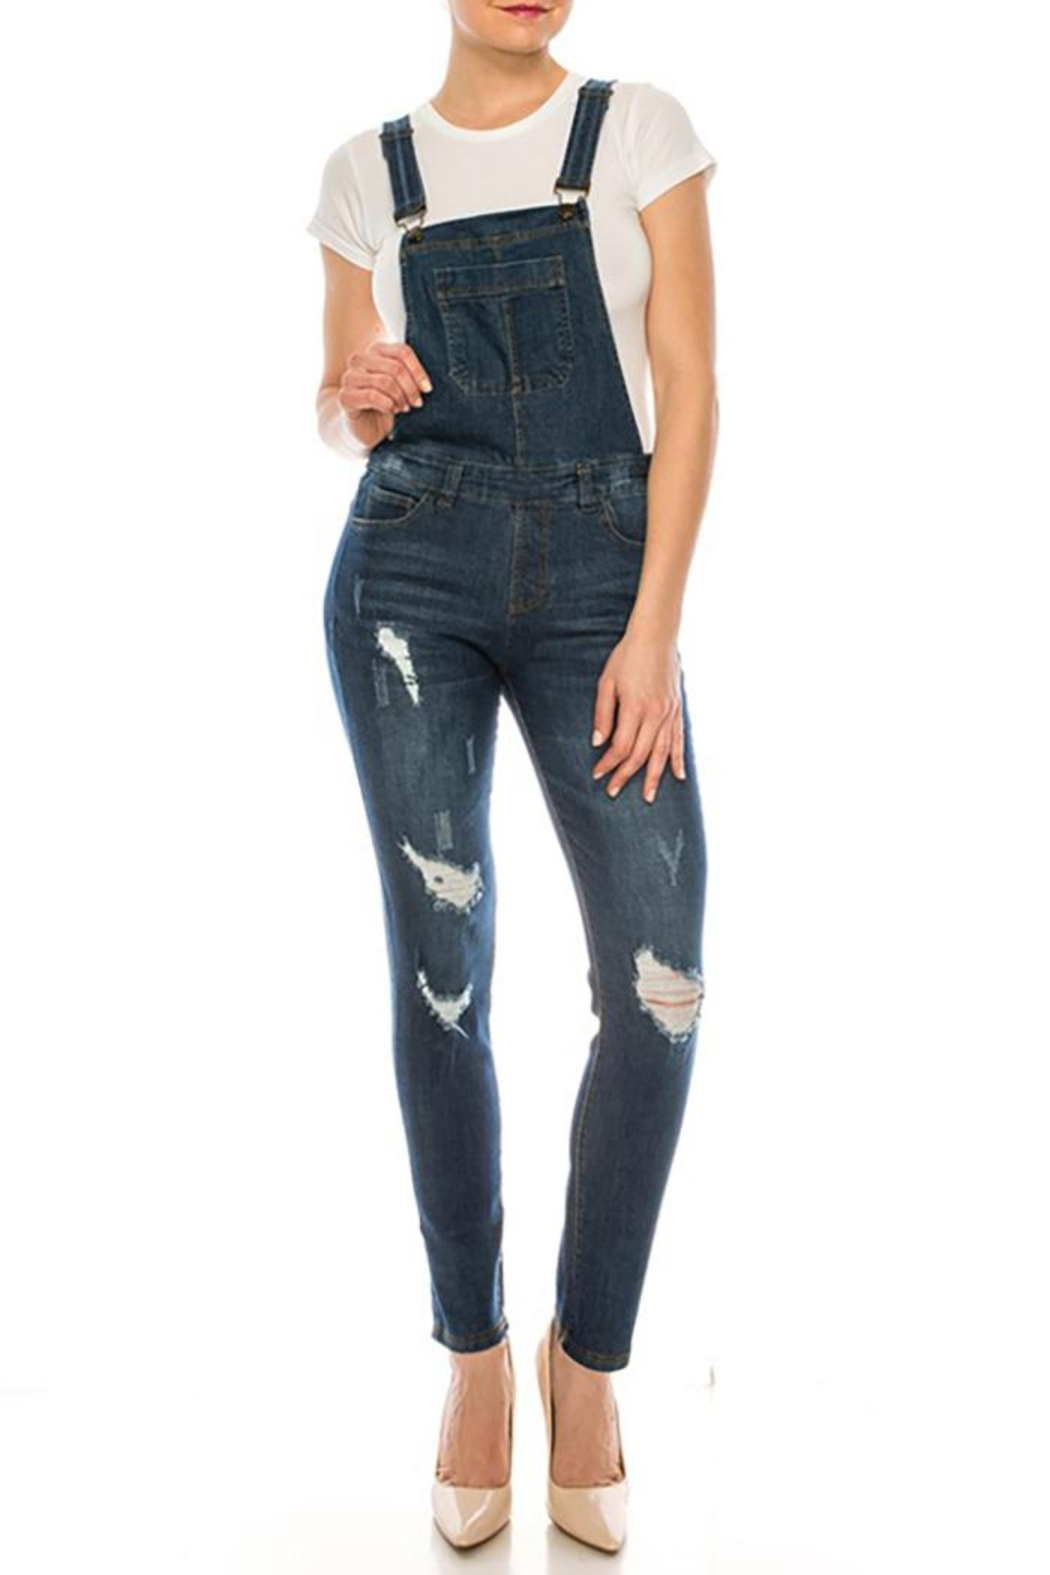 Color 5 Baggy Denim Overalls Jumpsuit Harem Pants - Main Image